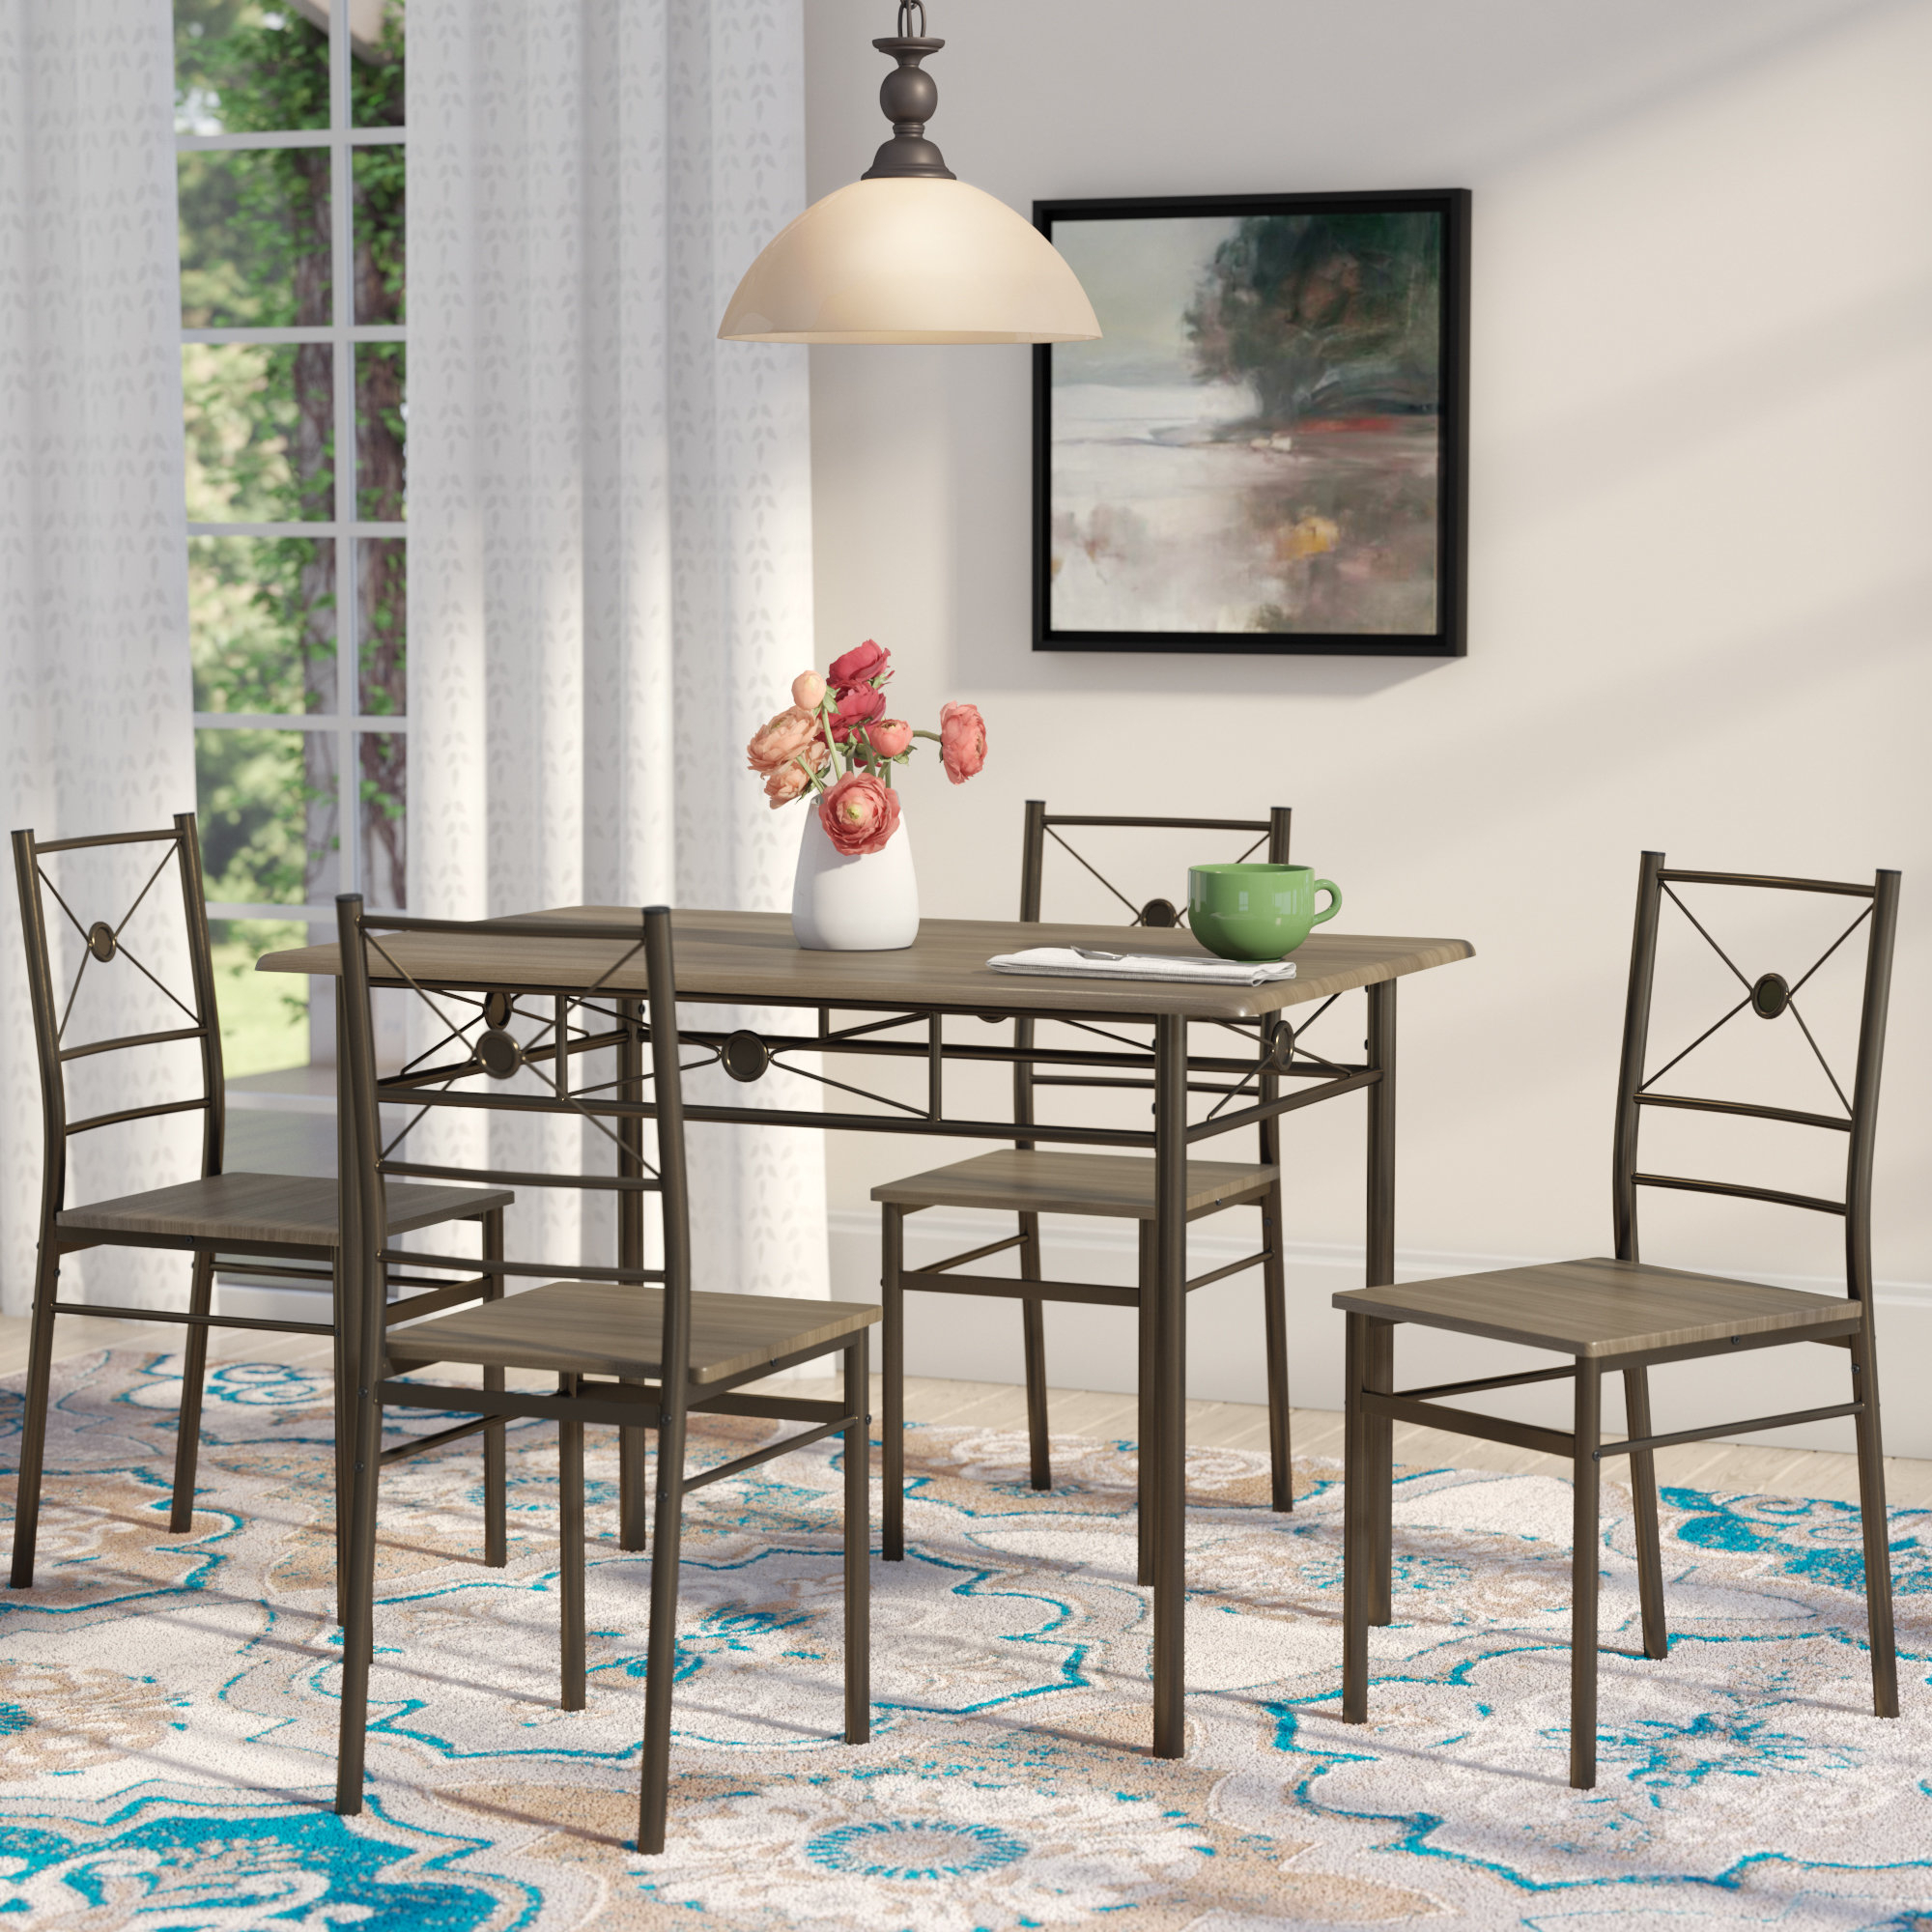 Kieffer 5 Piece Dining Set Pertaining To Best And Newest Lightle 5 Piece Breakfast Nook Dining Sets (Image 10 of 20)